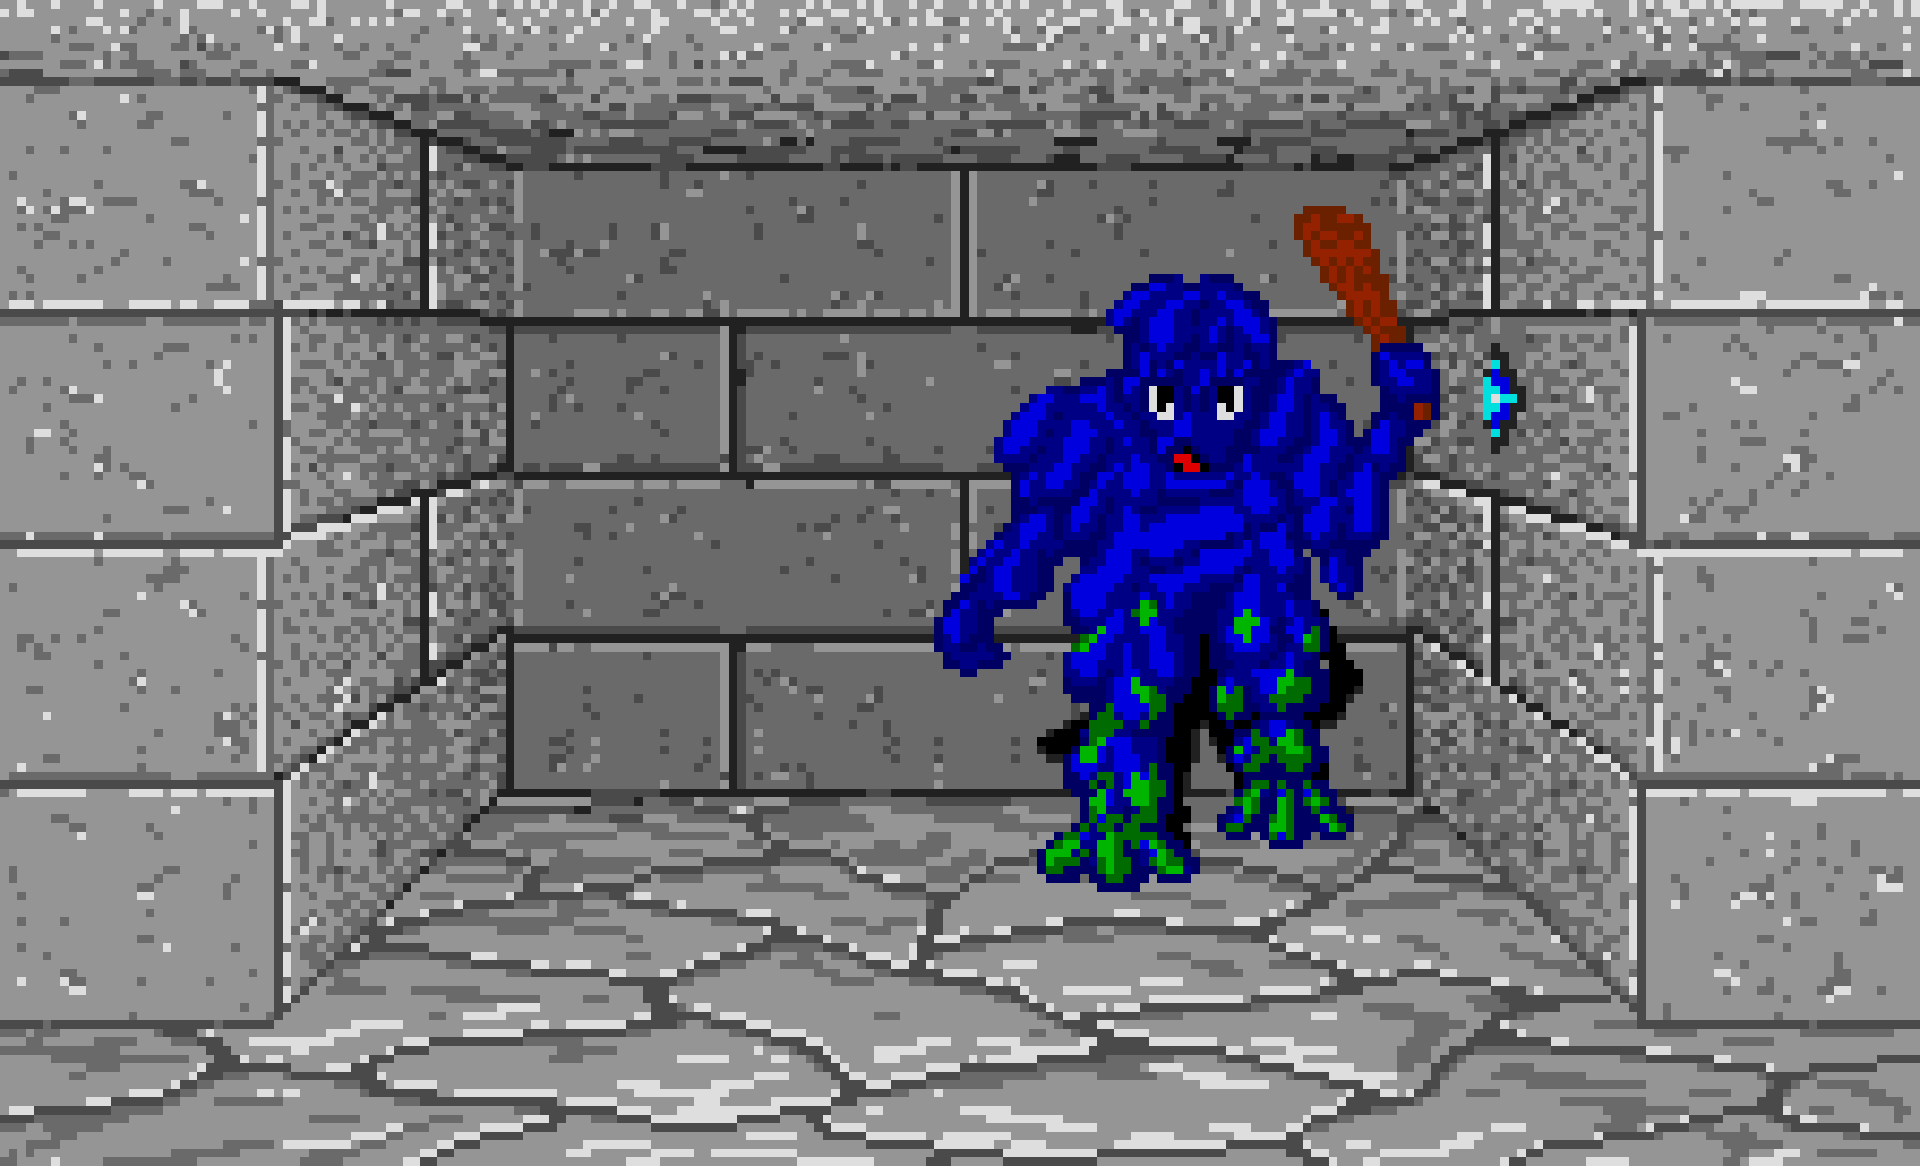 Dungeon Master screenshot courtesy of Moby Games